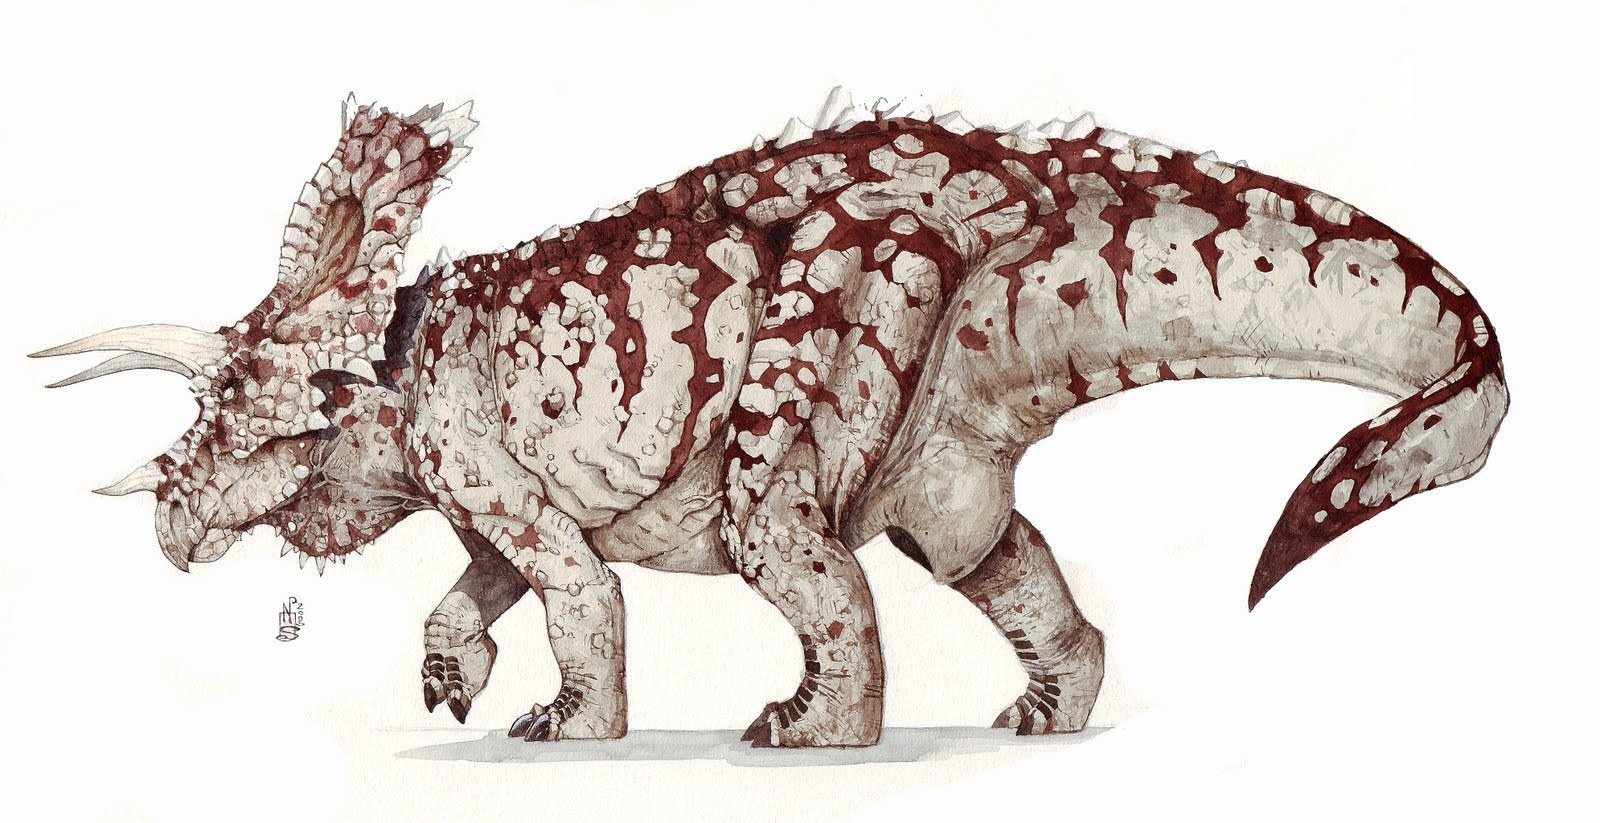 dinossauros images Triceratops HD wallpaper and background photos